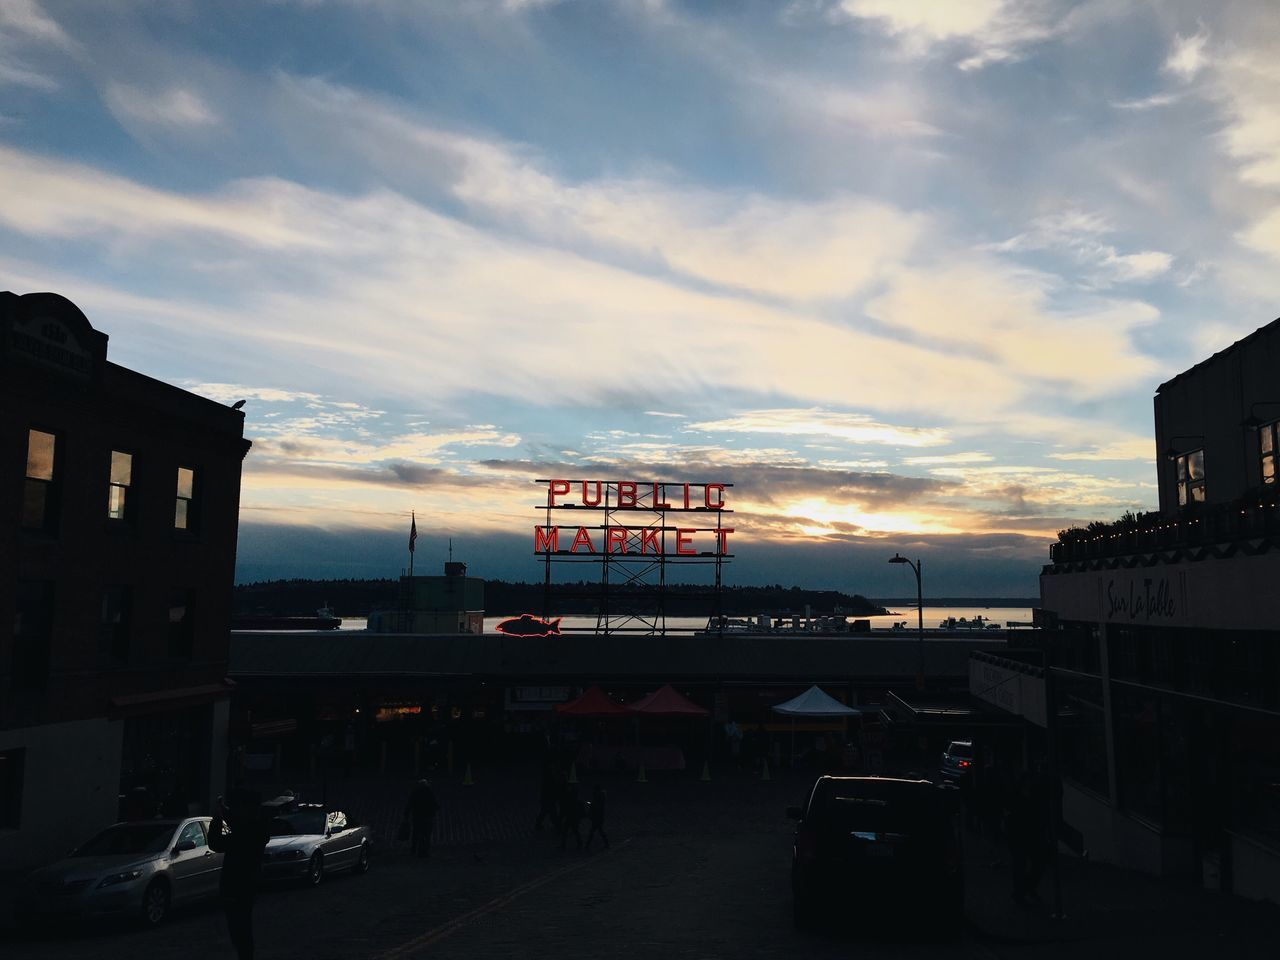 haven't walked through the market in a while. long way home, after work. Seattle